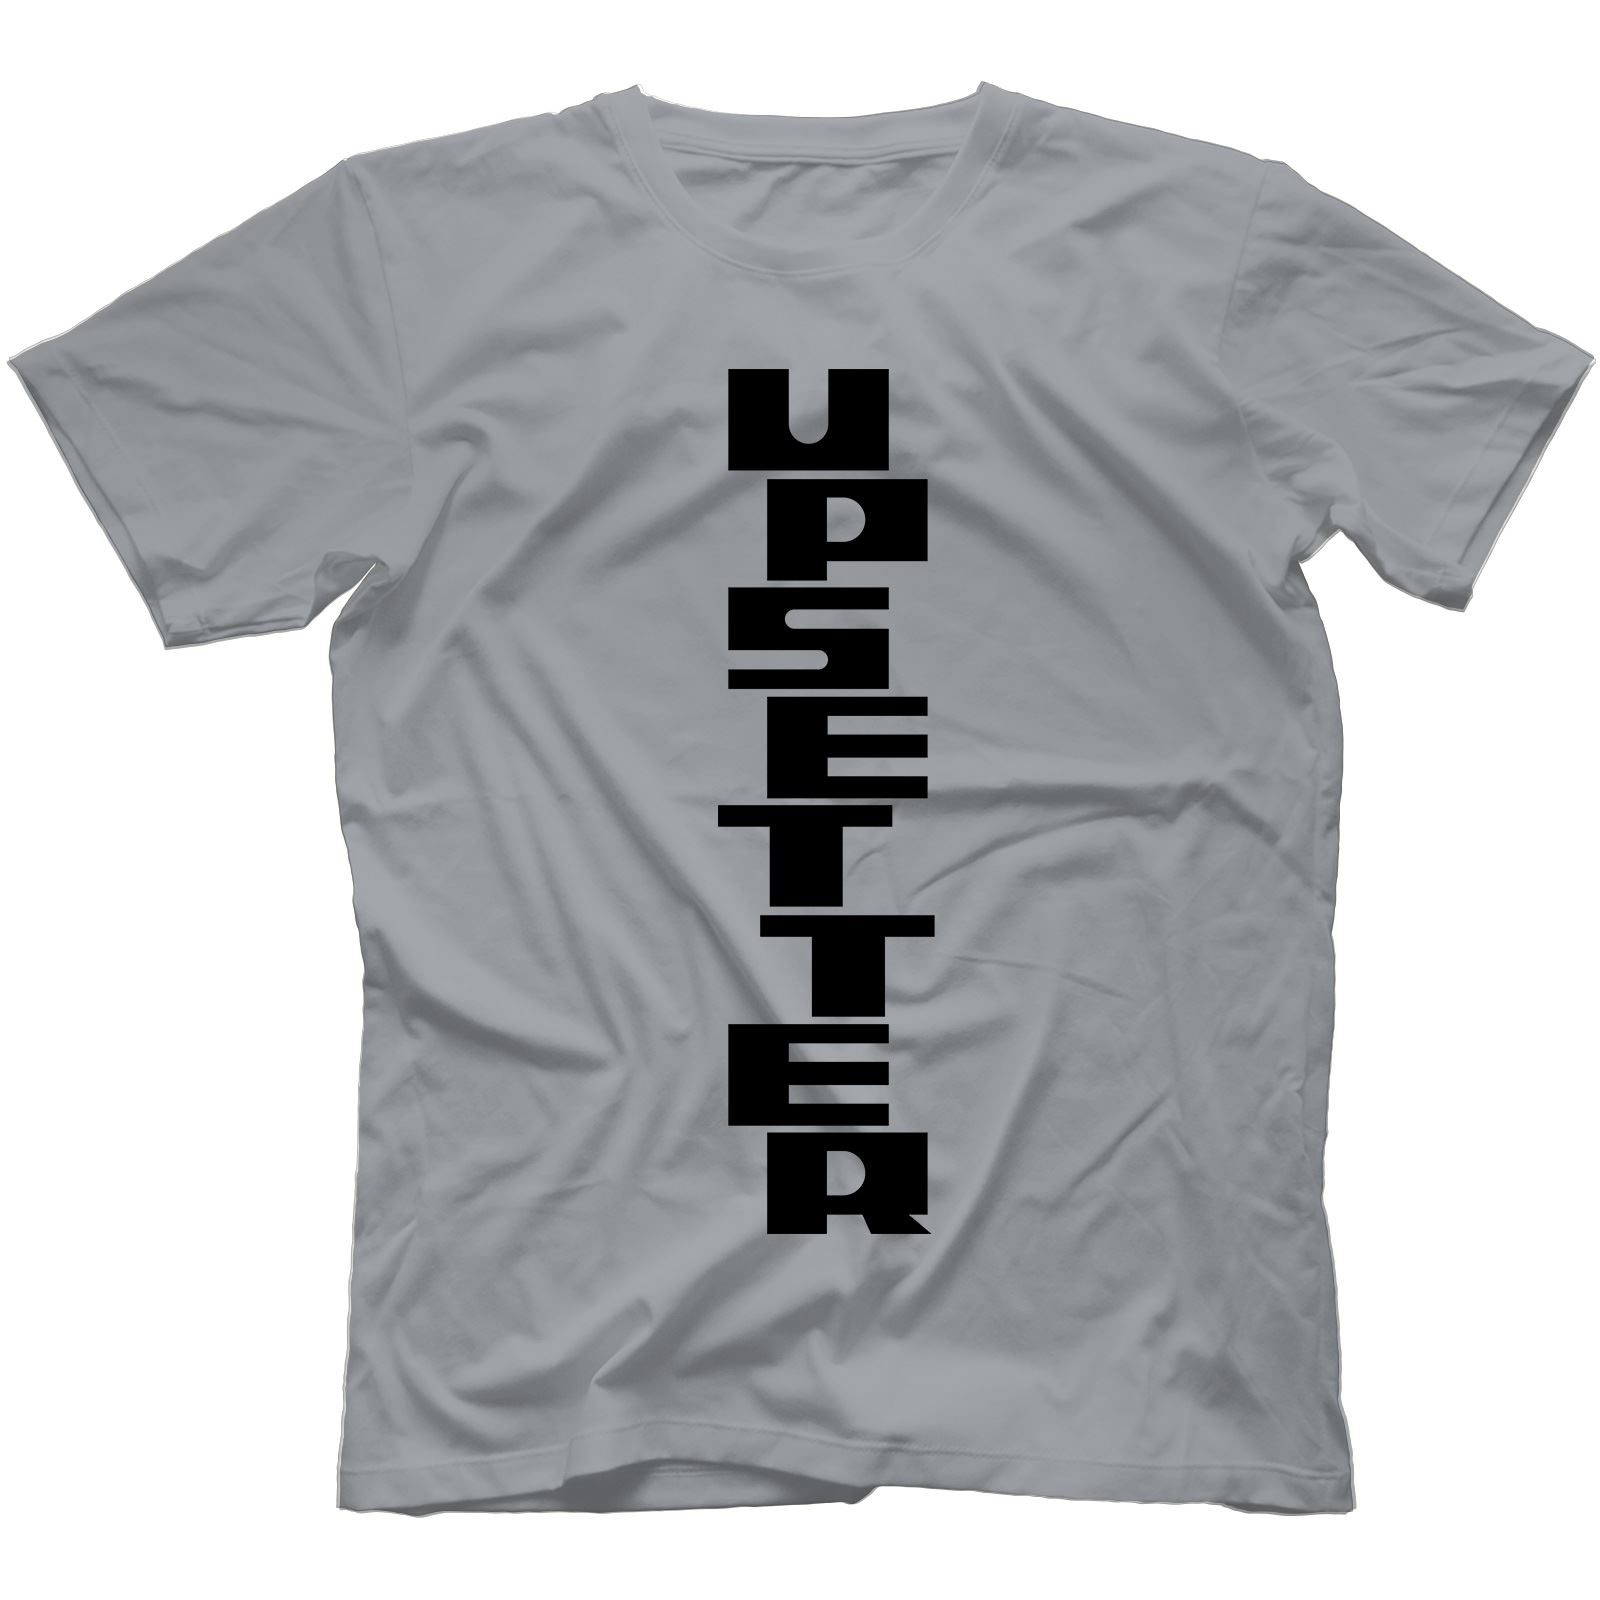 Upsetter records t shirt 100 cotton lee scratch perry the for Making a shirt from scratch